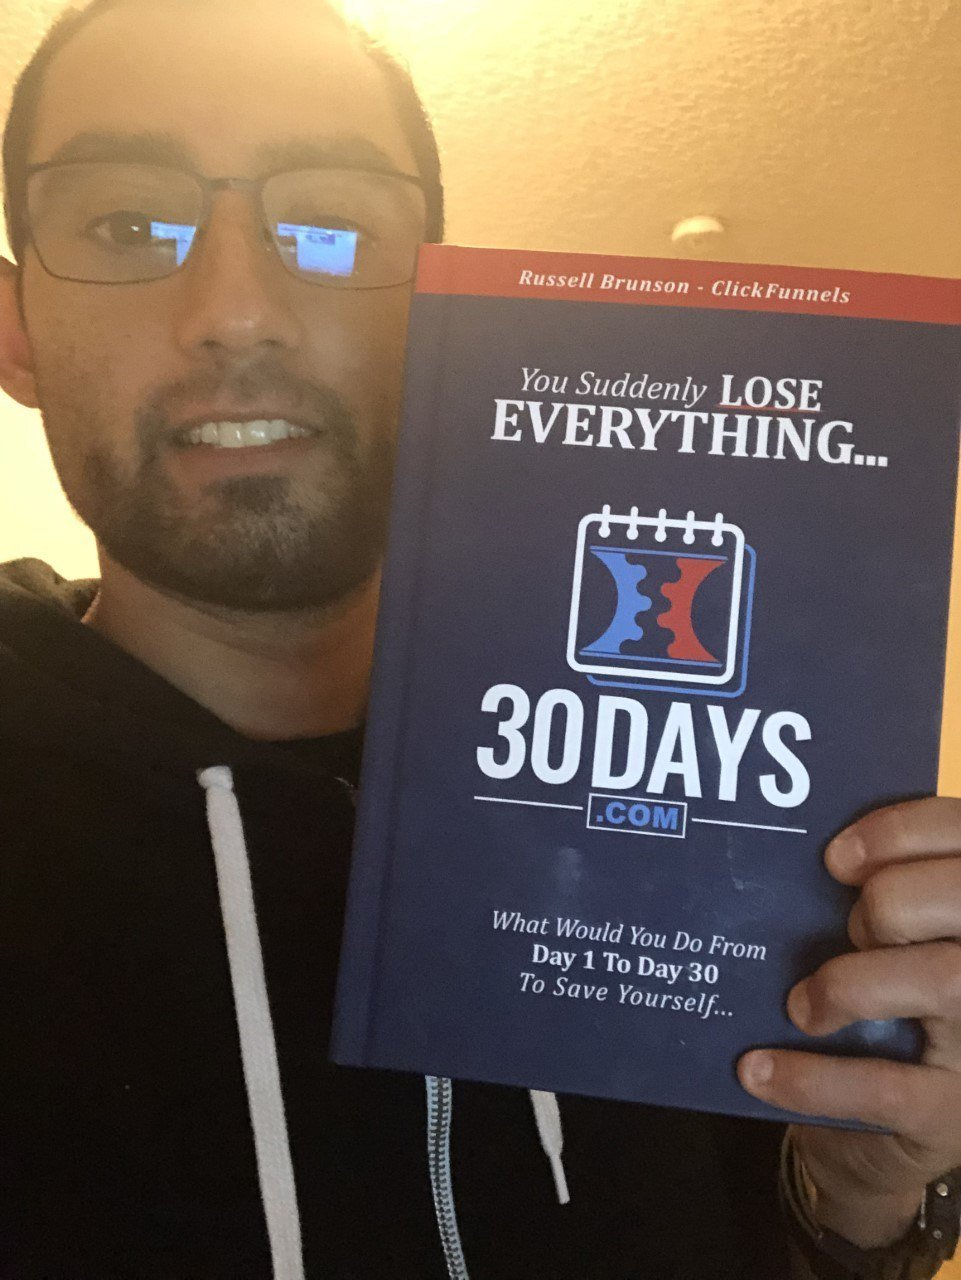 30 days summit book from clickfunnels